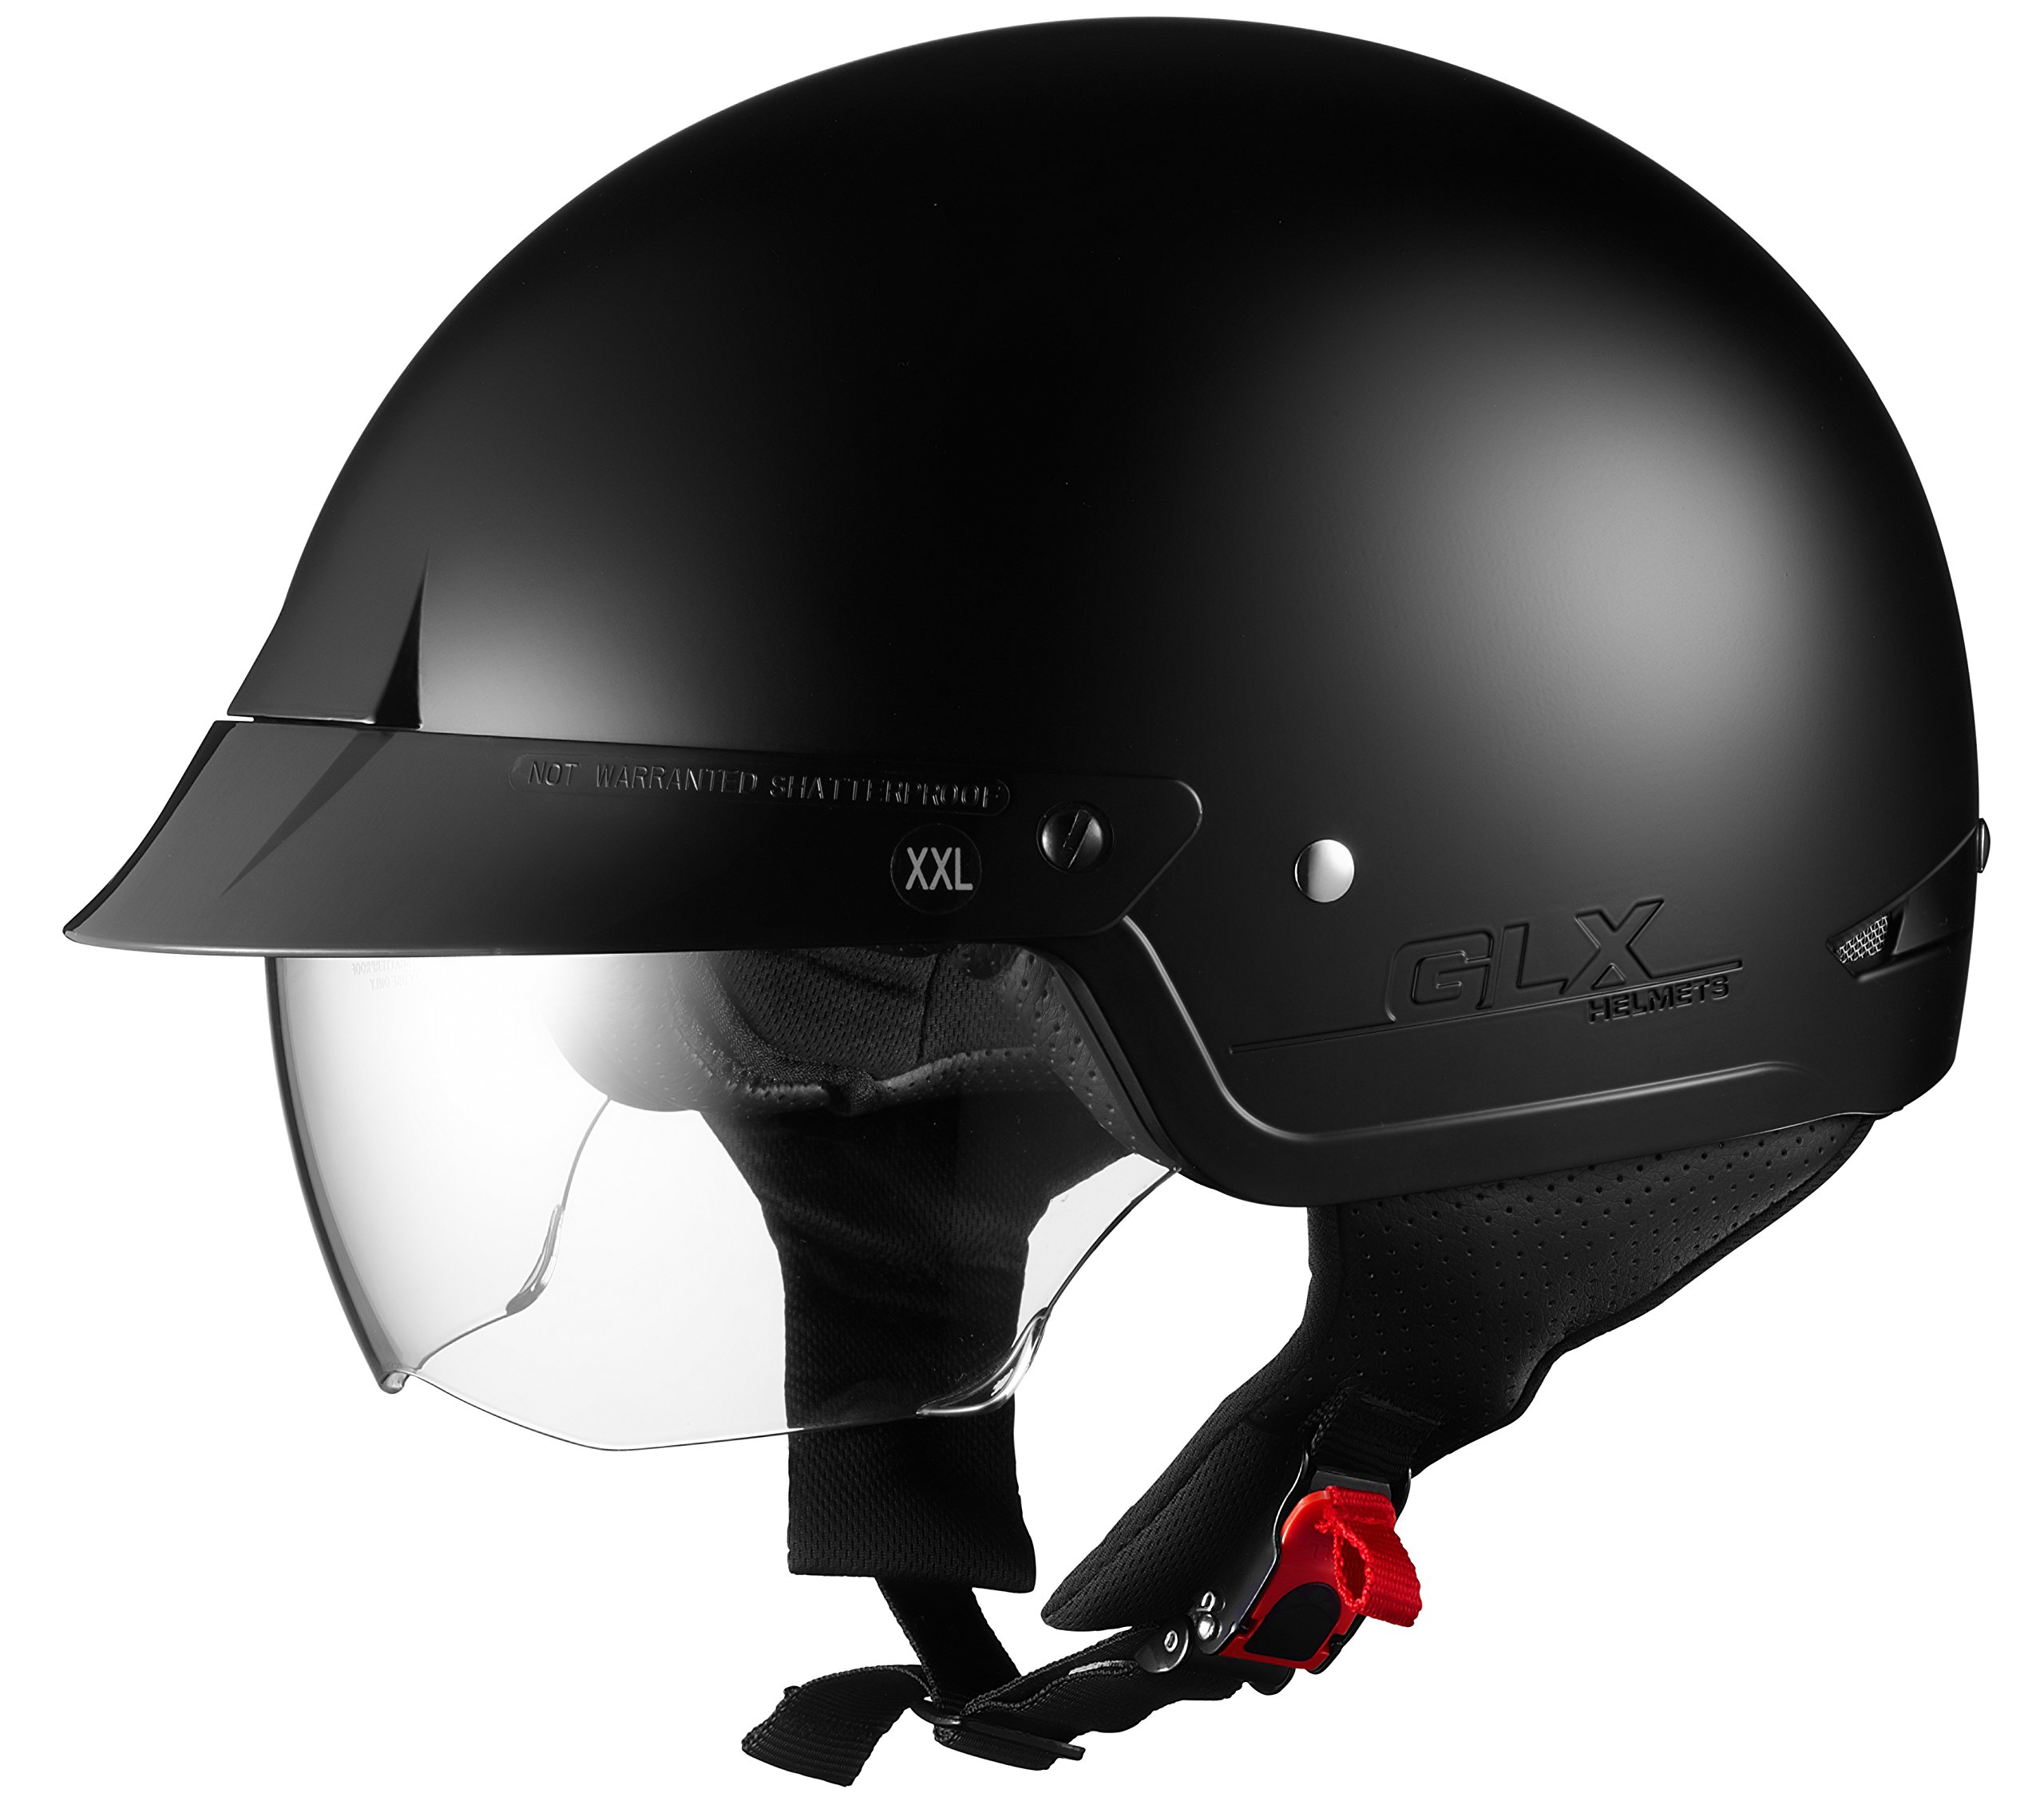 GLX Cruiser Scooter Motorcycle Half Helmet DOT Approved + 2 Retractable Visors (Matte Black, Small) by GLX